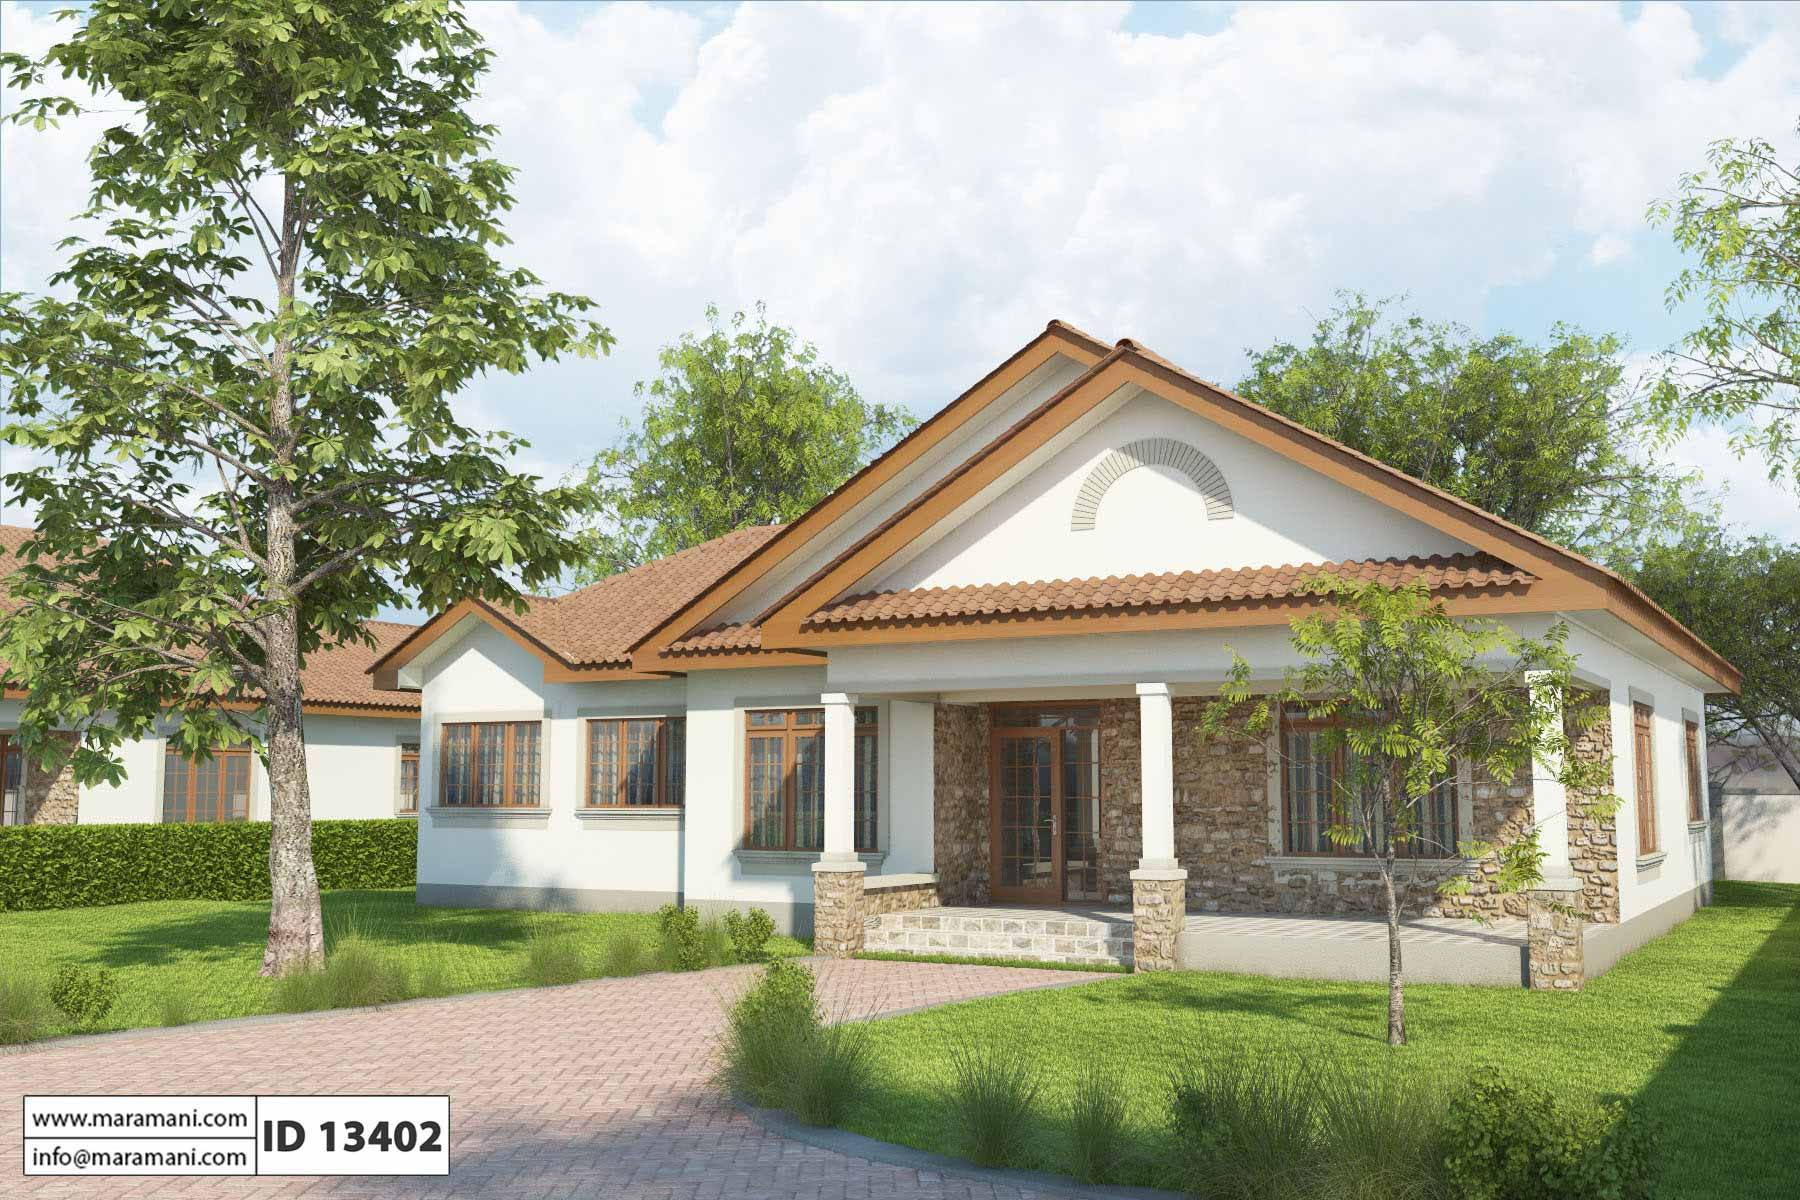 Simple 3 bedroom house plan id 13402 house designs by for Bathroom designs kenya